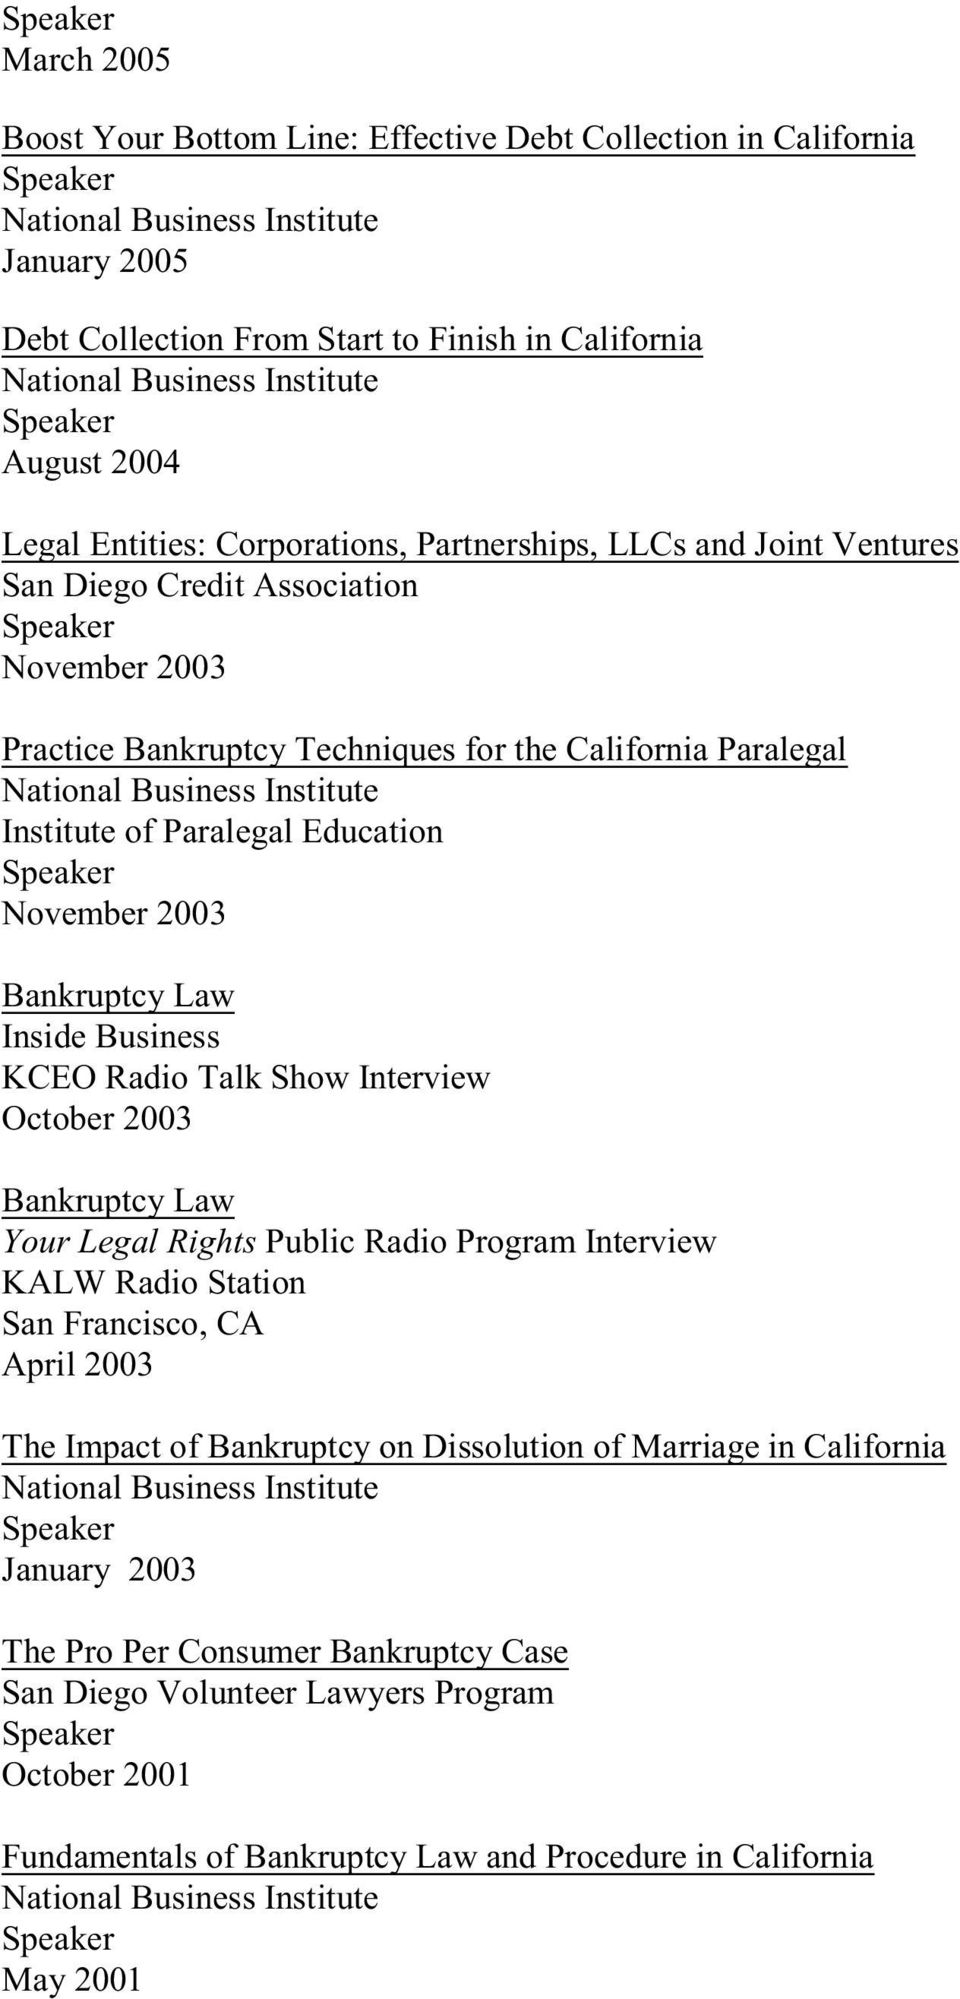 2003 Inside Business KCEO Radio Talk Show Interview October 2003 Your Legal Rights Public Radio Program Interview KALW Radio Station San Francisco, CA April 2003 The Impact of